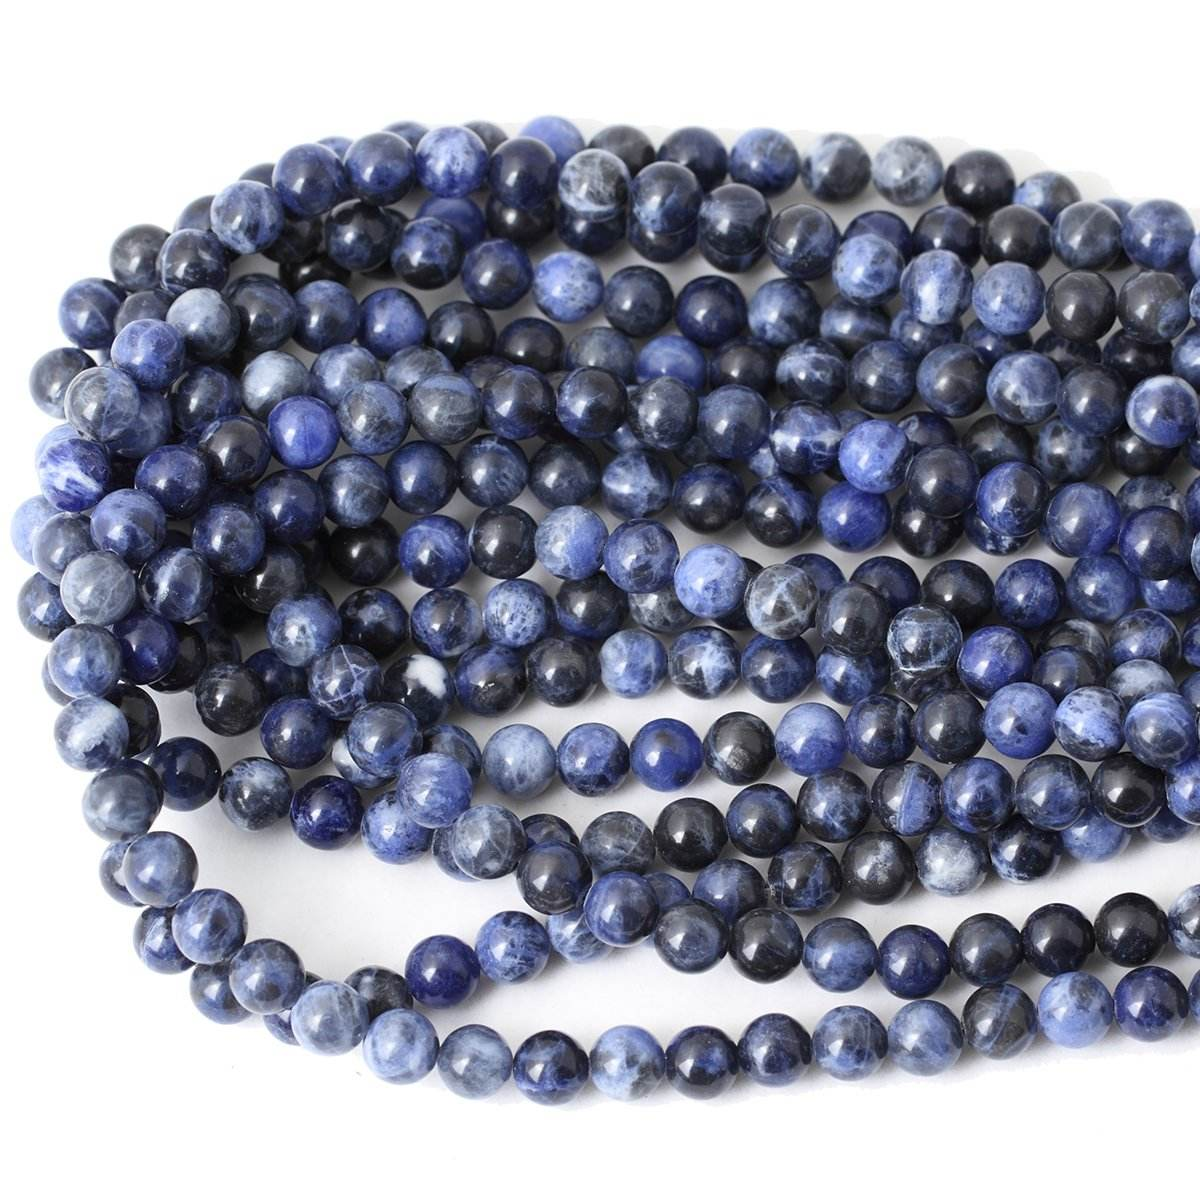 Natural 8mm Sodalite Gemstone Loose Beads Round Smooth Stone Energy Healing Stone Power Beads for Jewelry Making